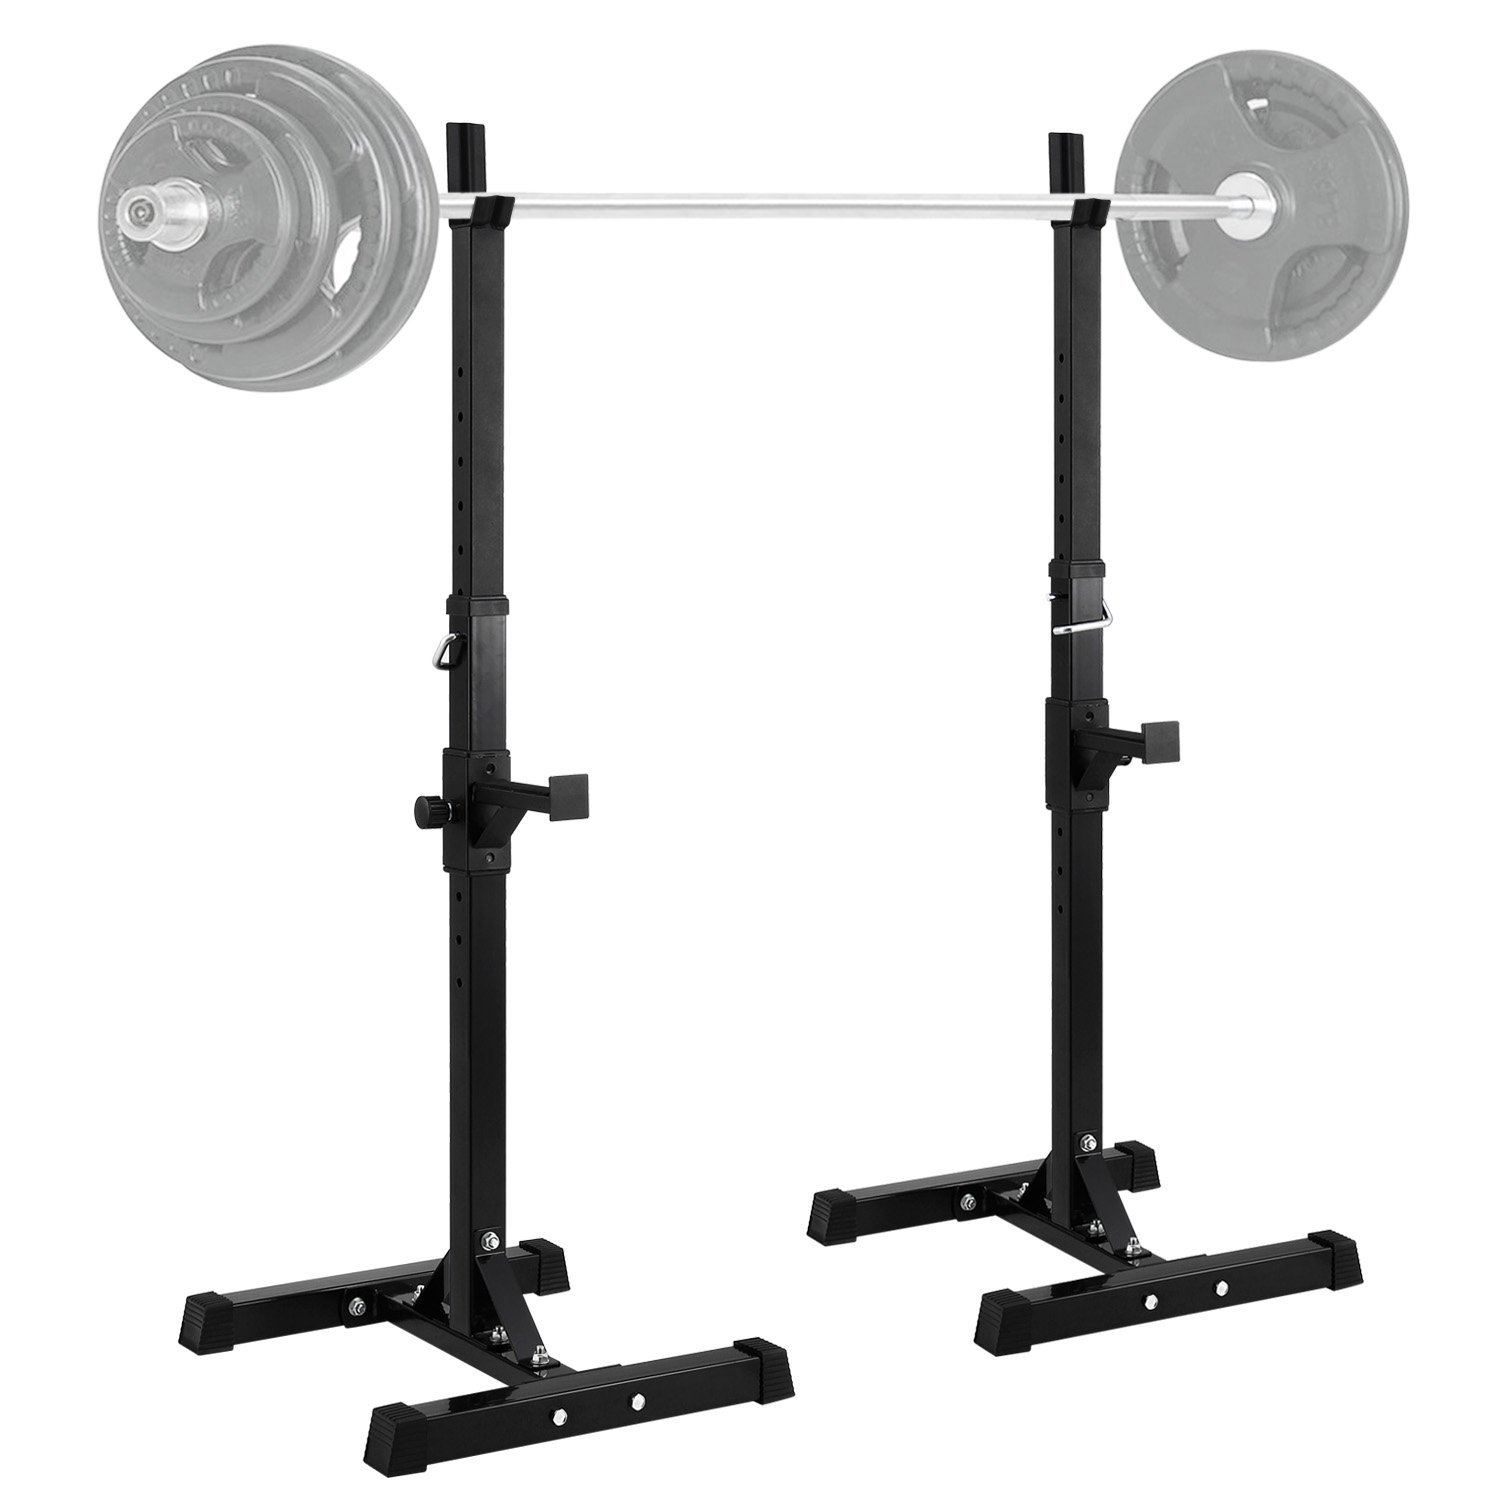 info sale rack safety set symbianology and home homemade bar press weight squat bench for